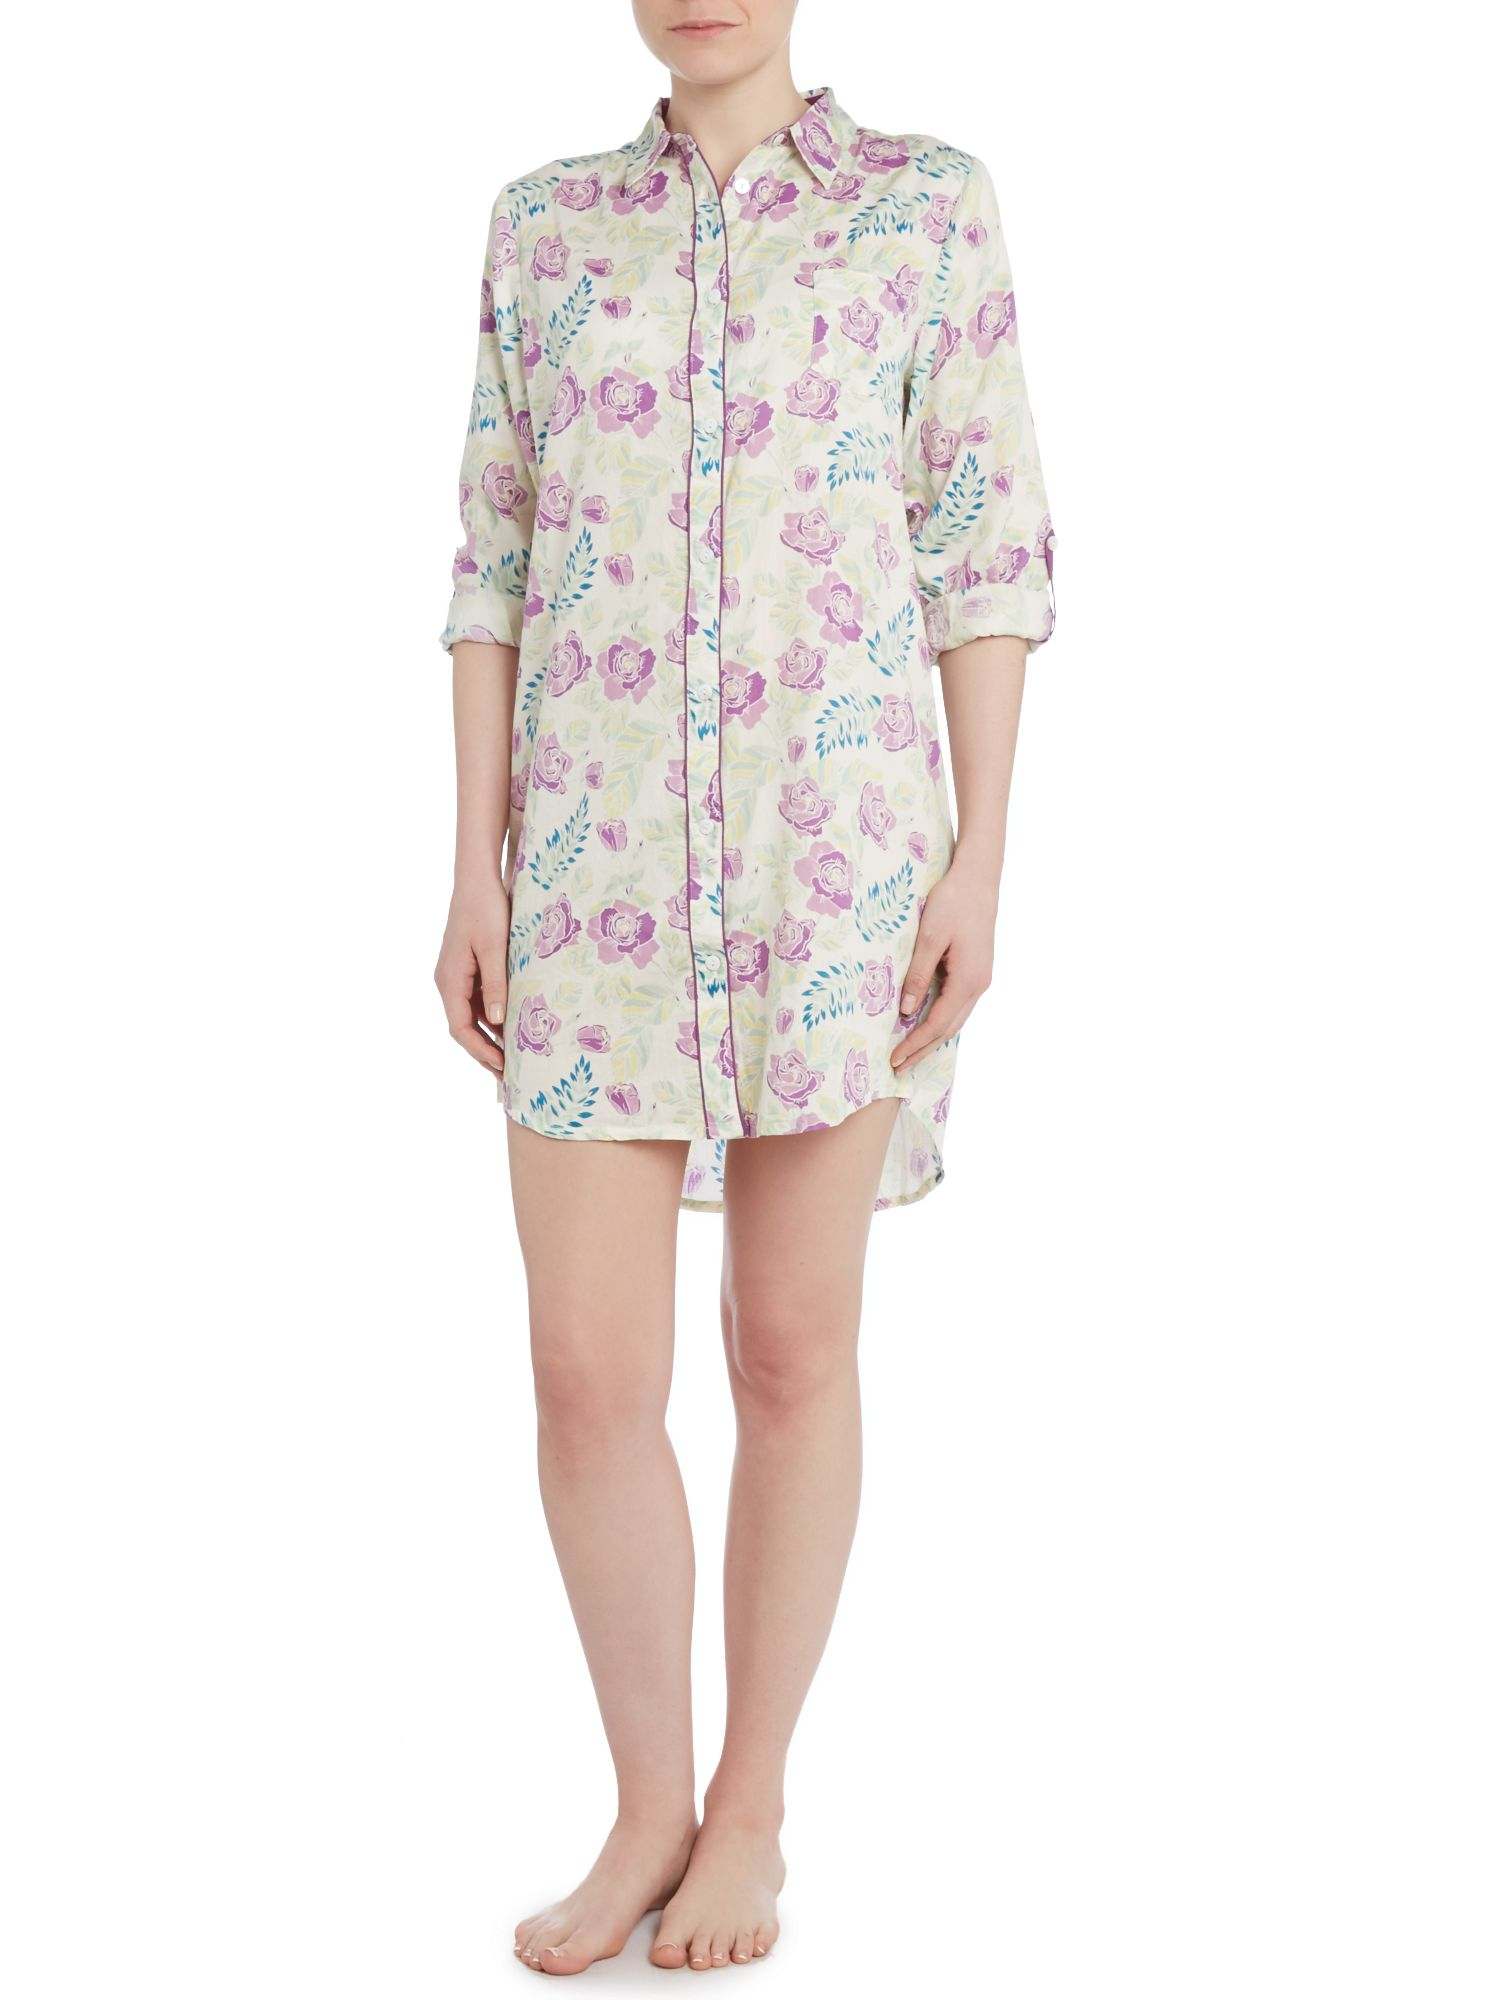 Evelyn Vintage Floral Nightwear Range